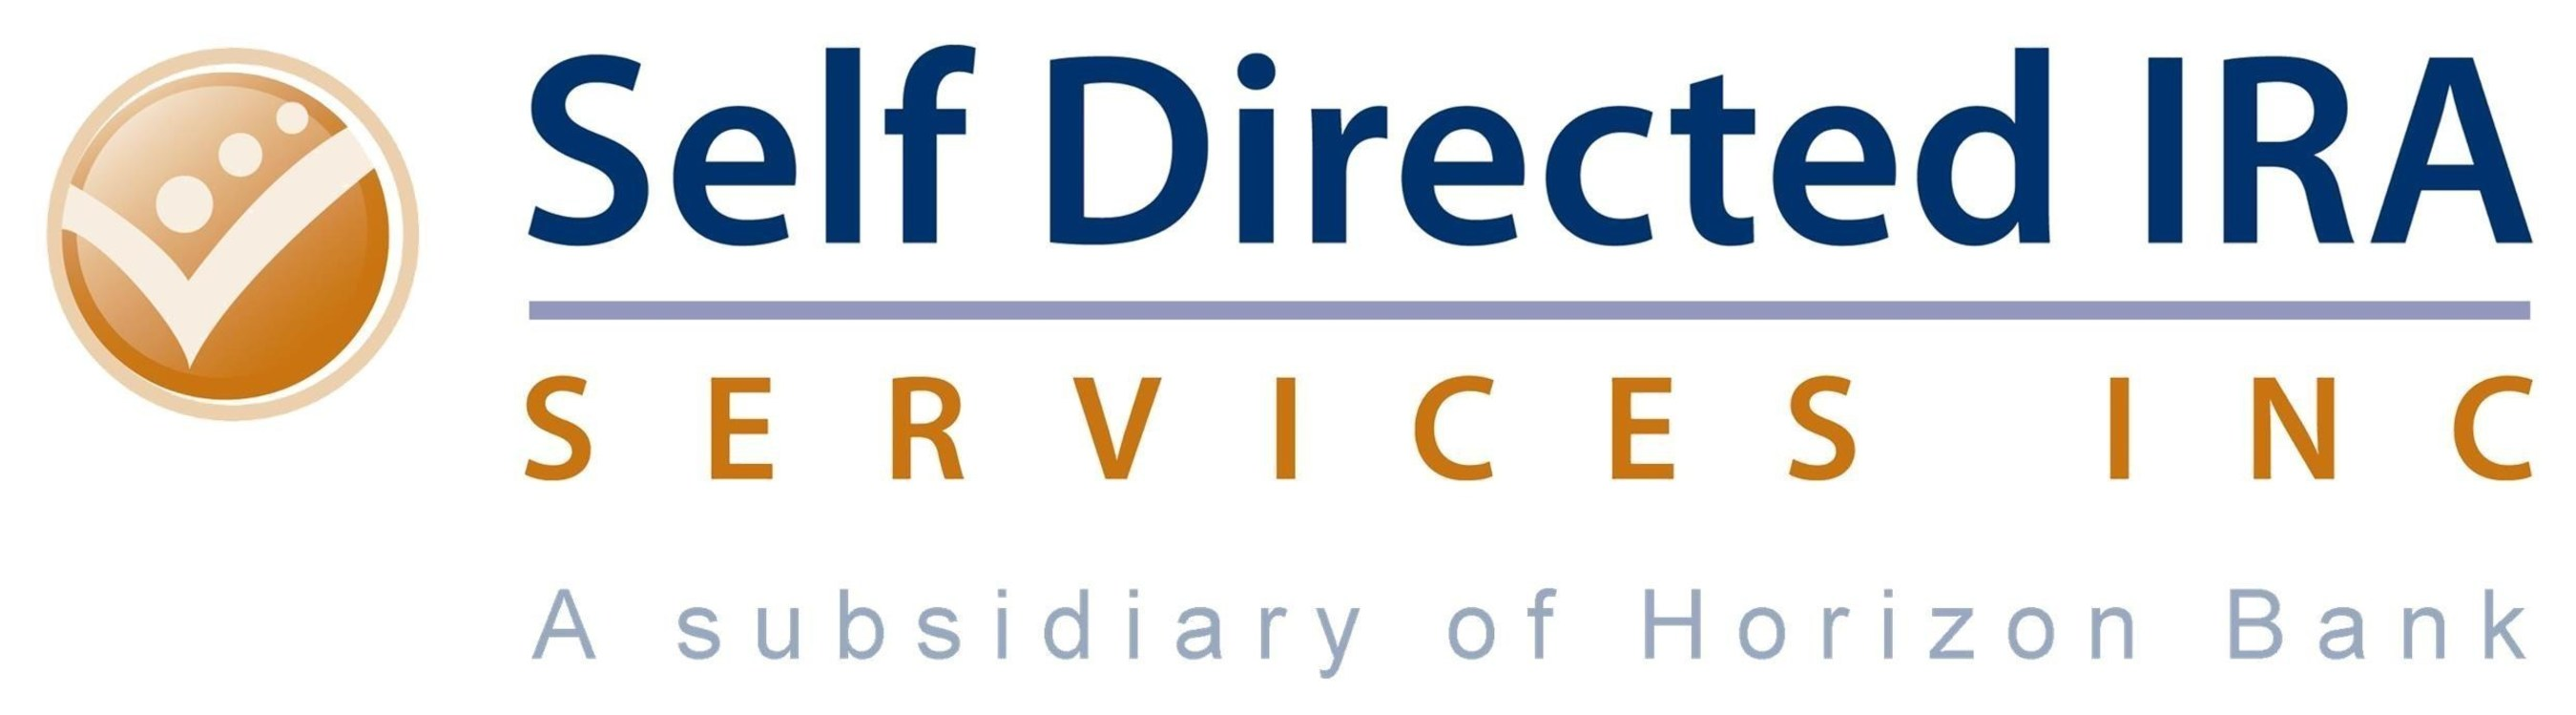 Jeff Thompson Joins Self Directed IRA Services, Inc  As COO